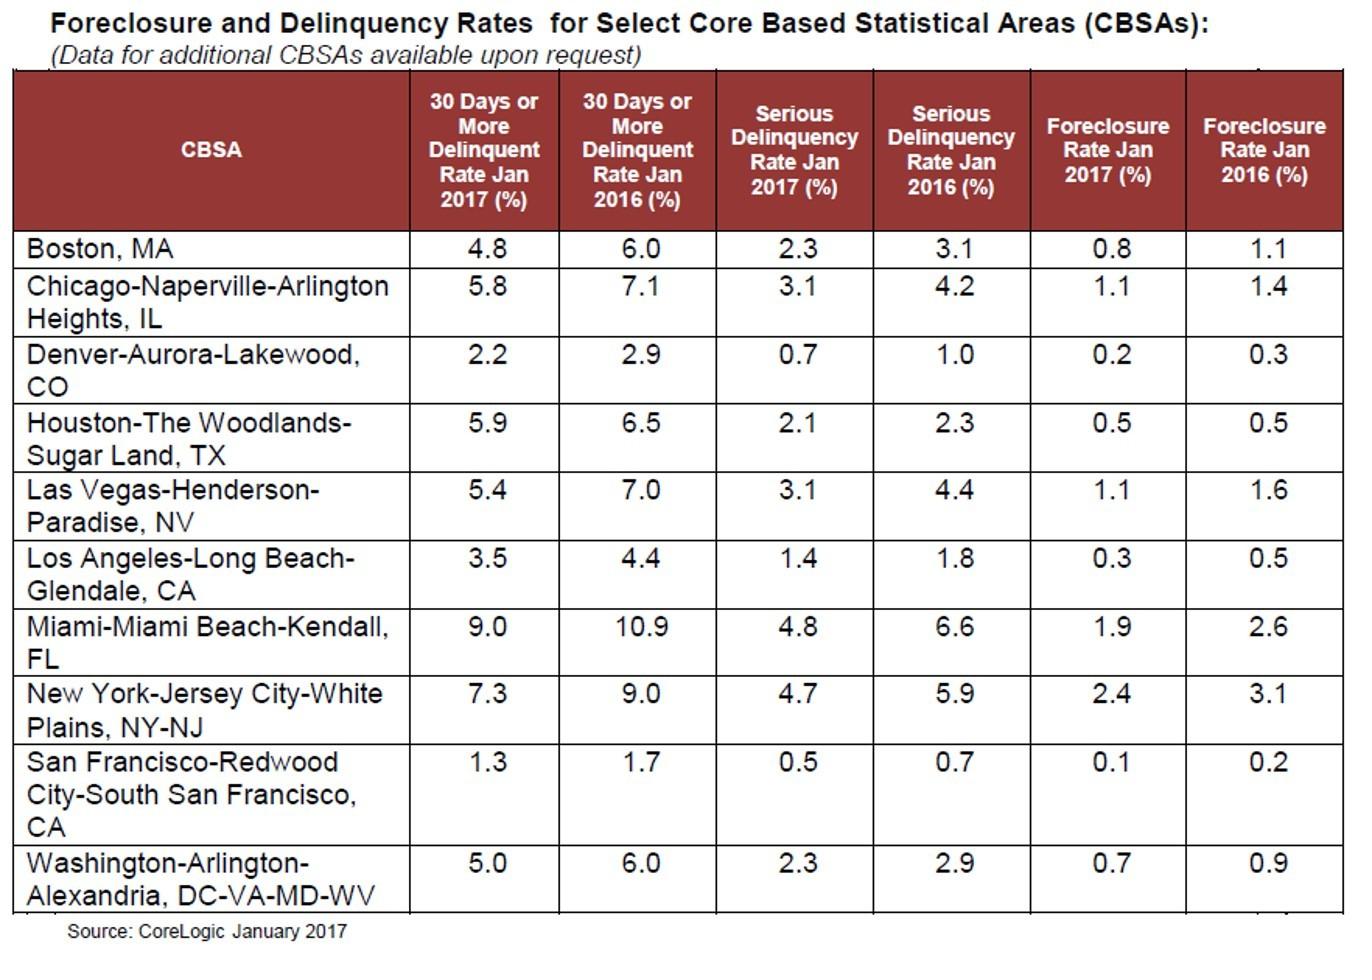 CoreLogic Loan Performance Foreclosure and Delinquency Rates for Select Core Based Statistical Areas (CBSAs): January 2017 (Graphic: Business Wire)